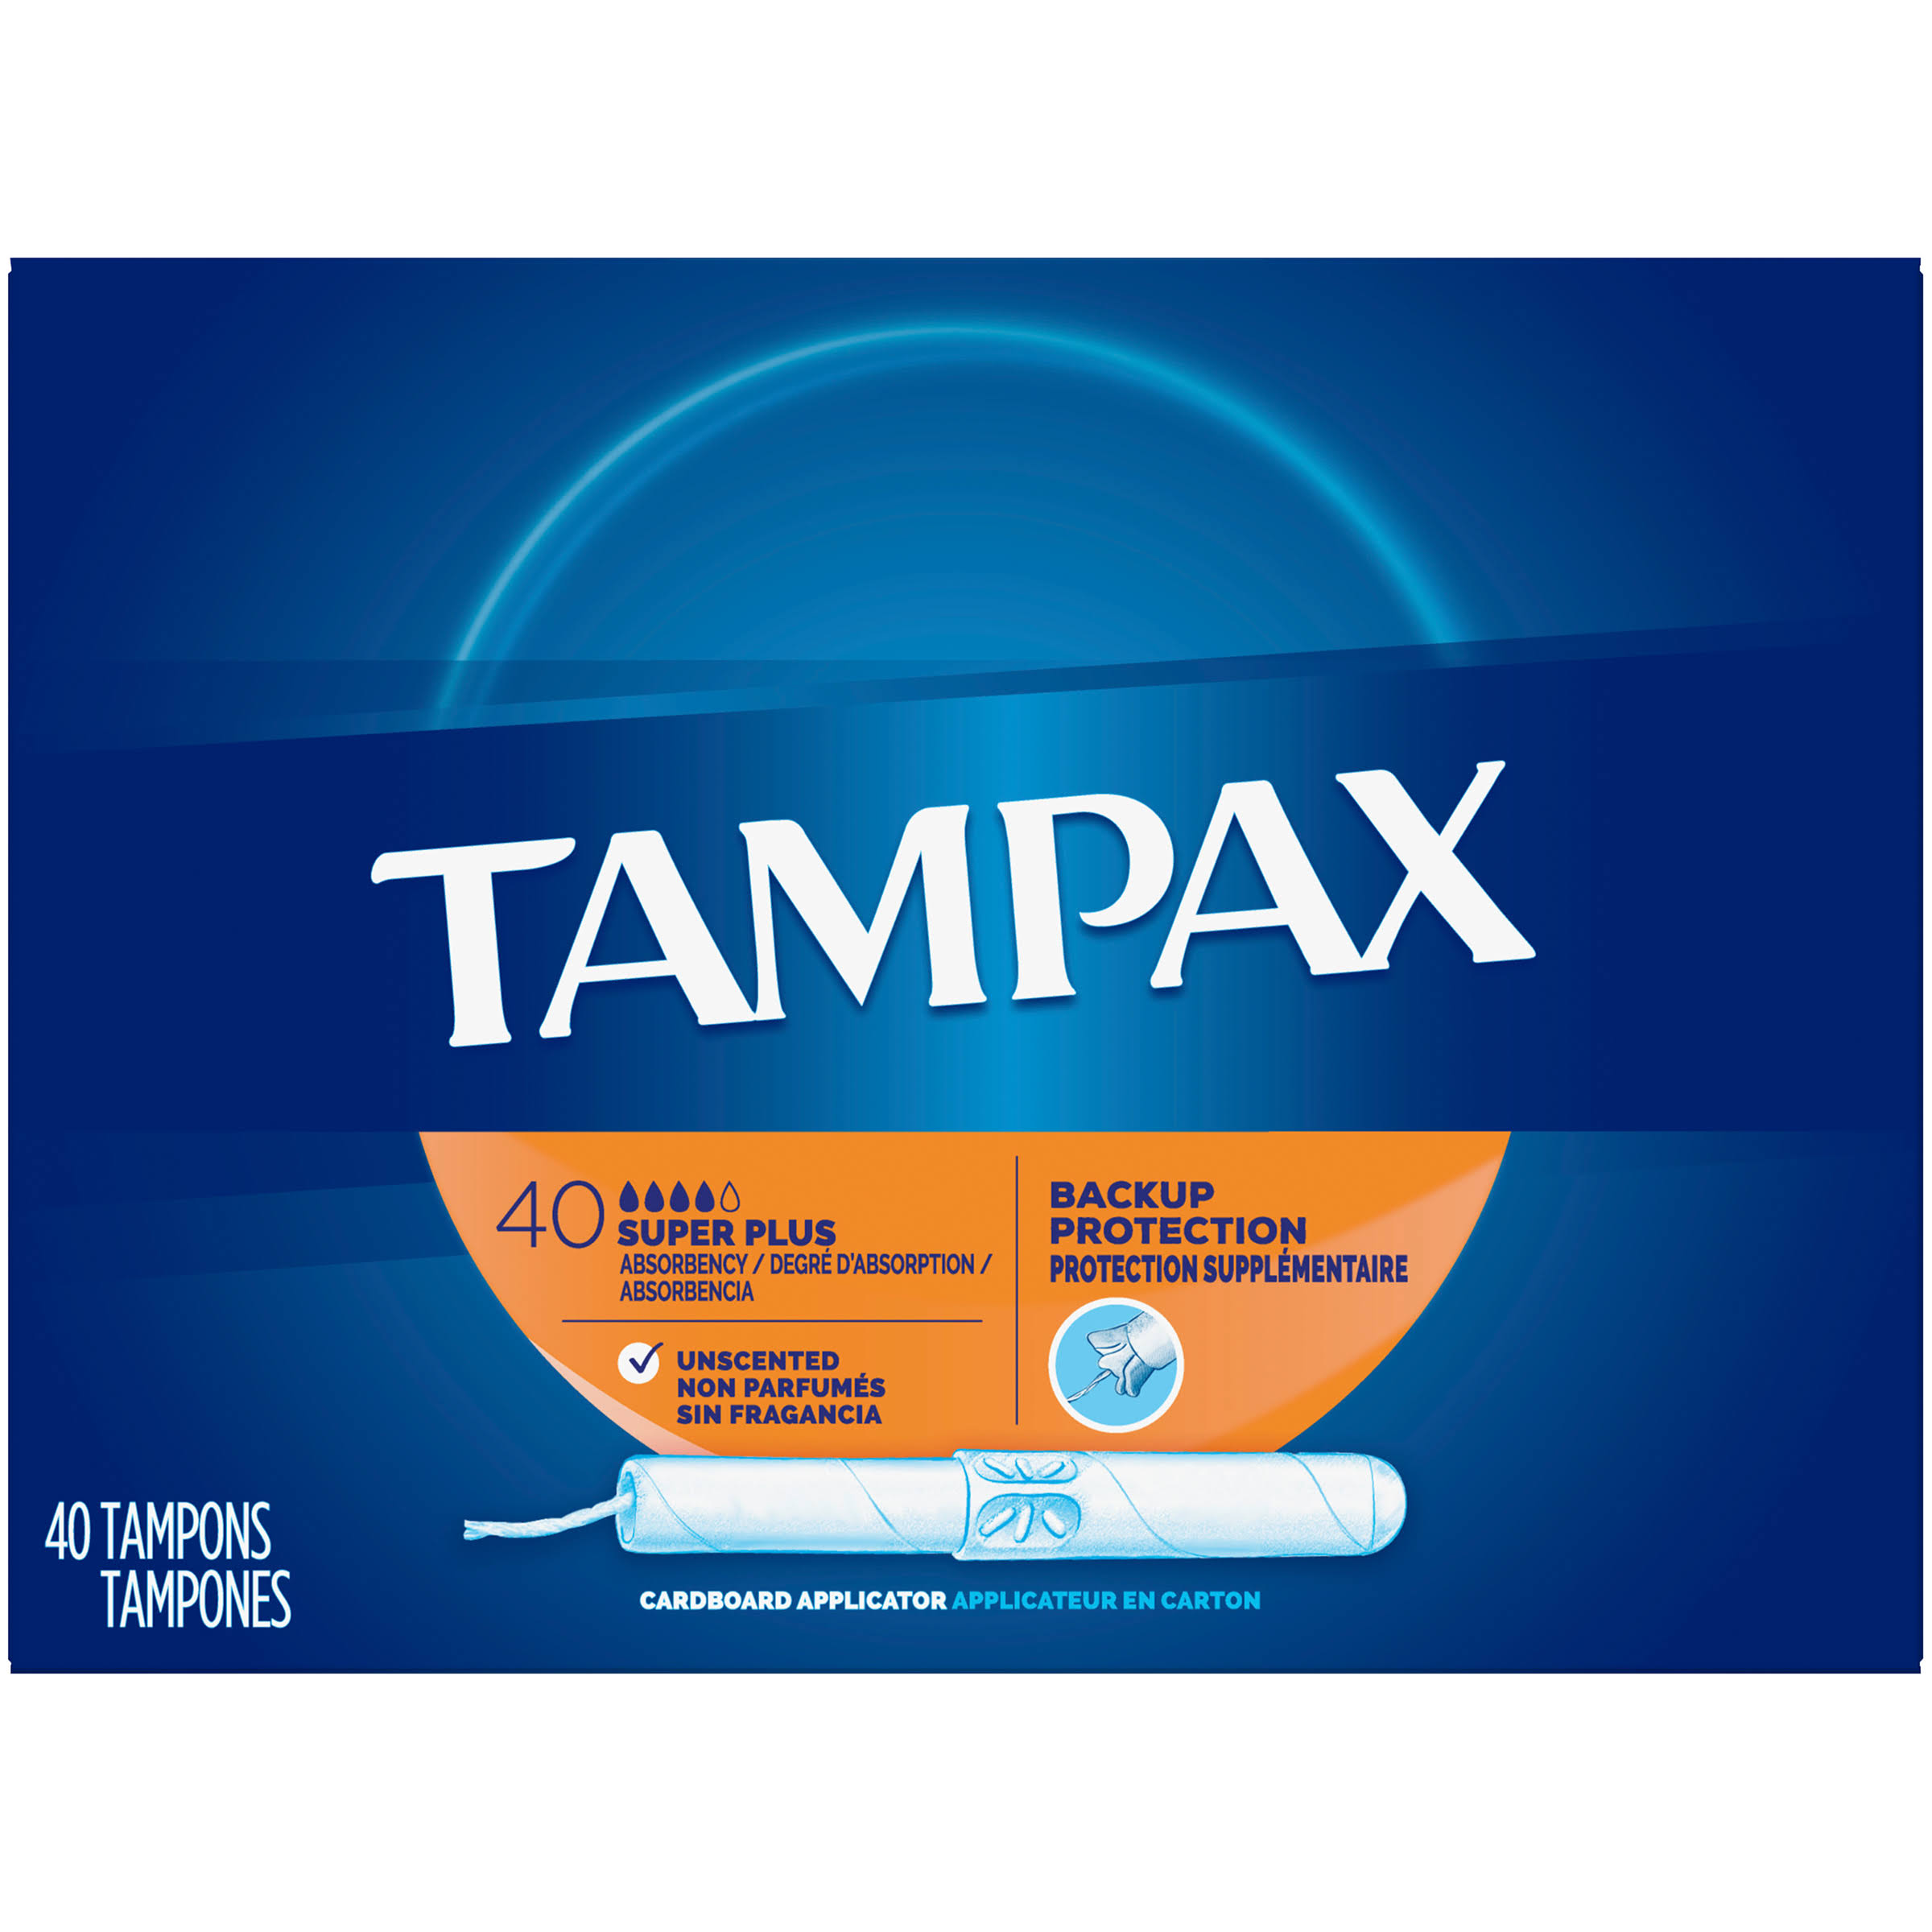 Tampax Tampons With Anti-Slip Grip Cardboard Applicator - Super Plus, 40 Tampons